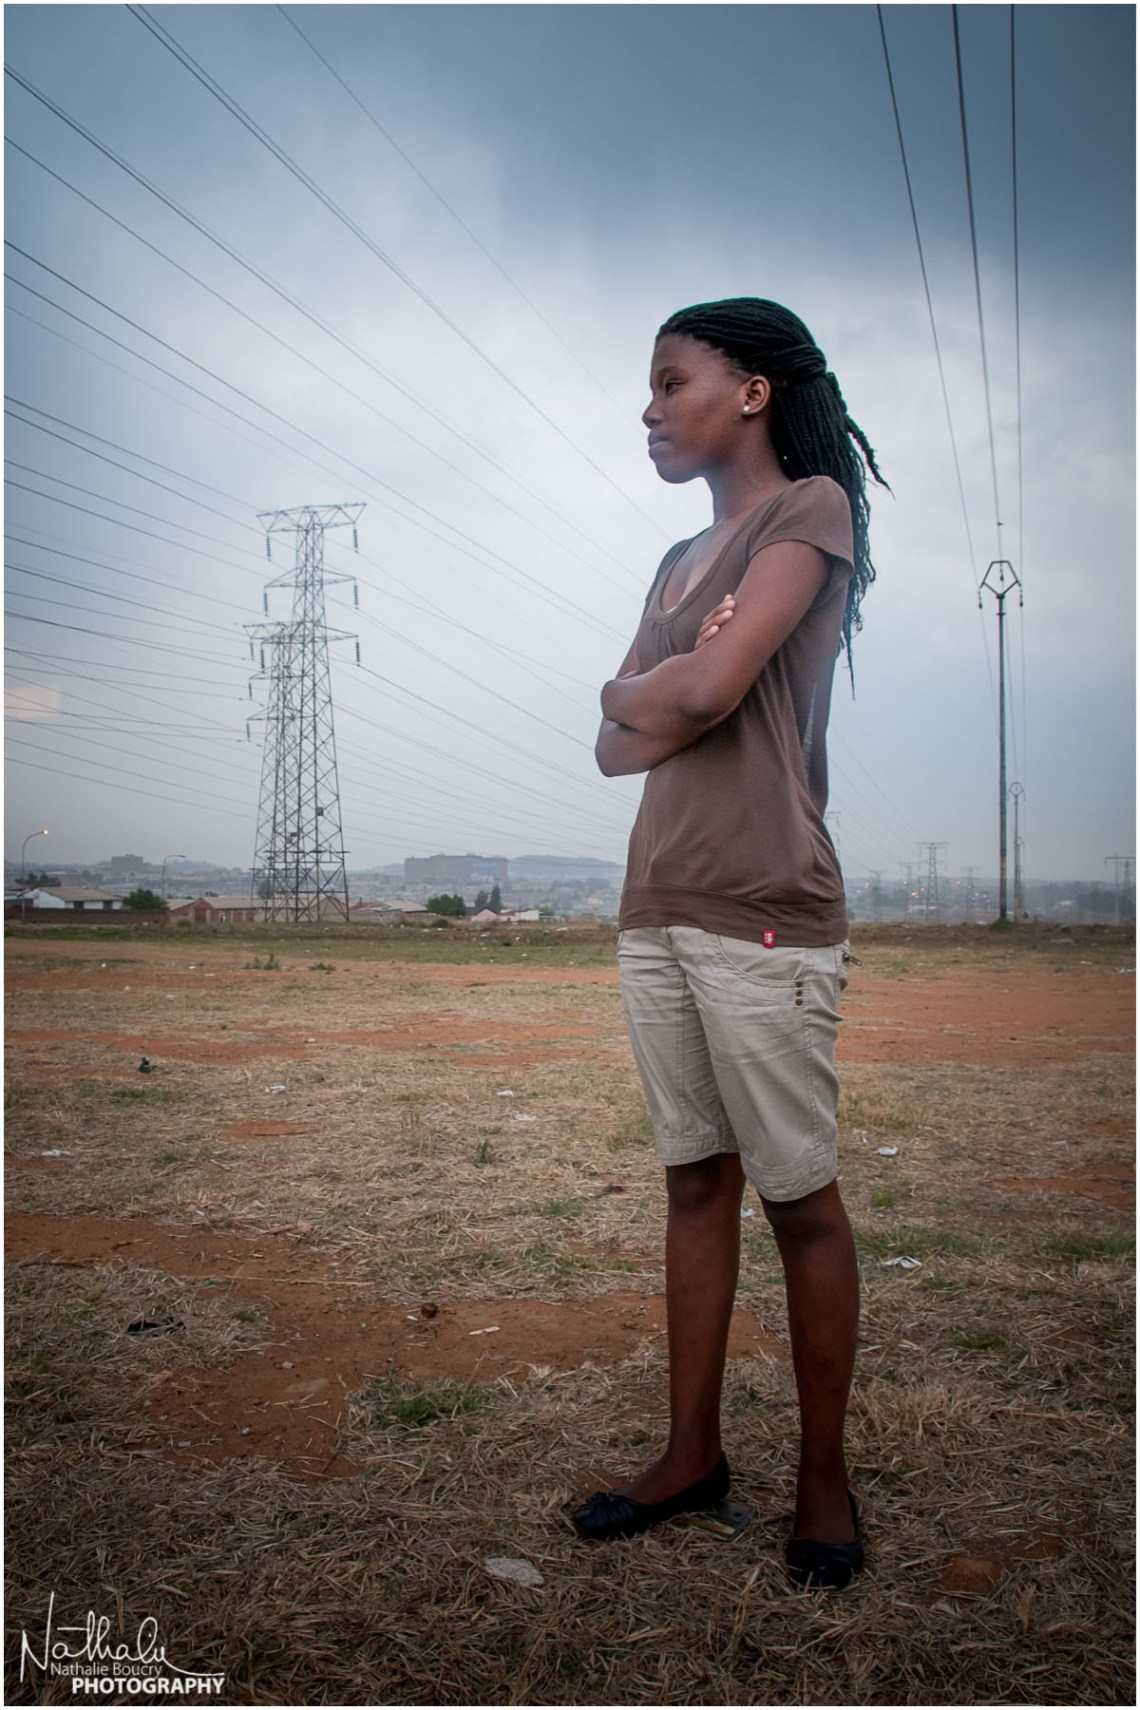 Nathalie Boucry Photography | Faces of a New Generation | Nomzamo 009